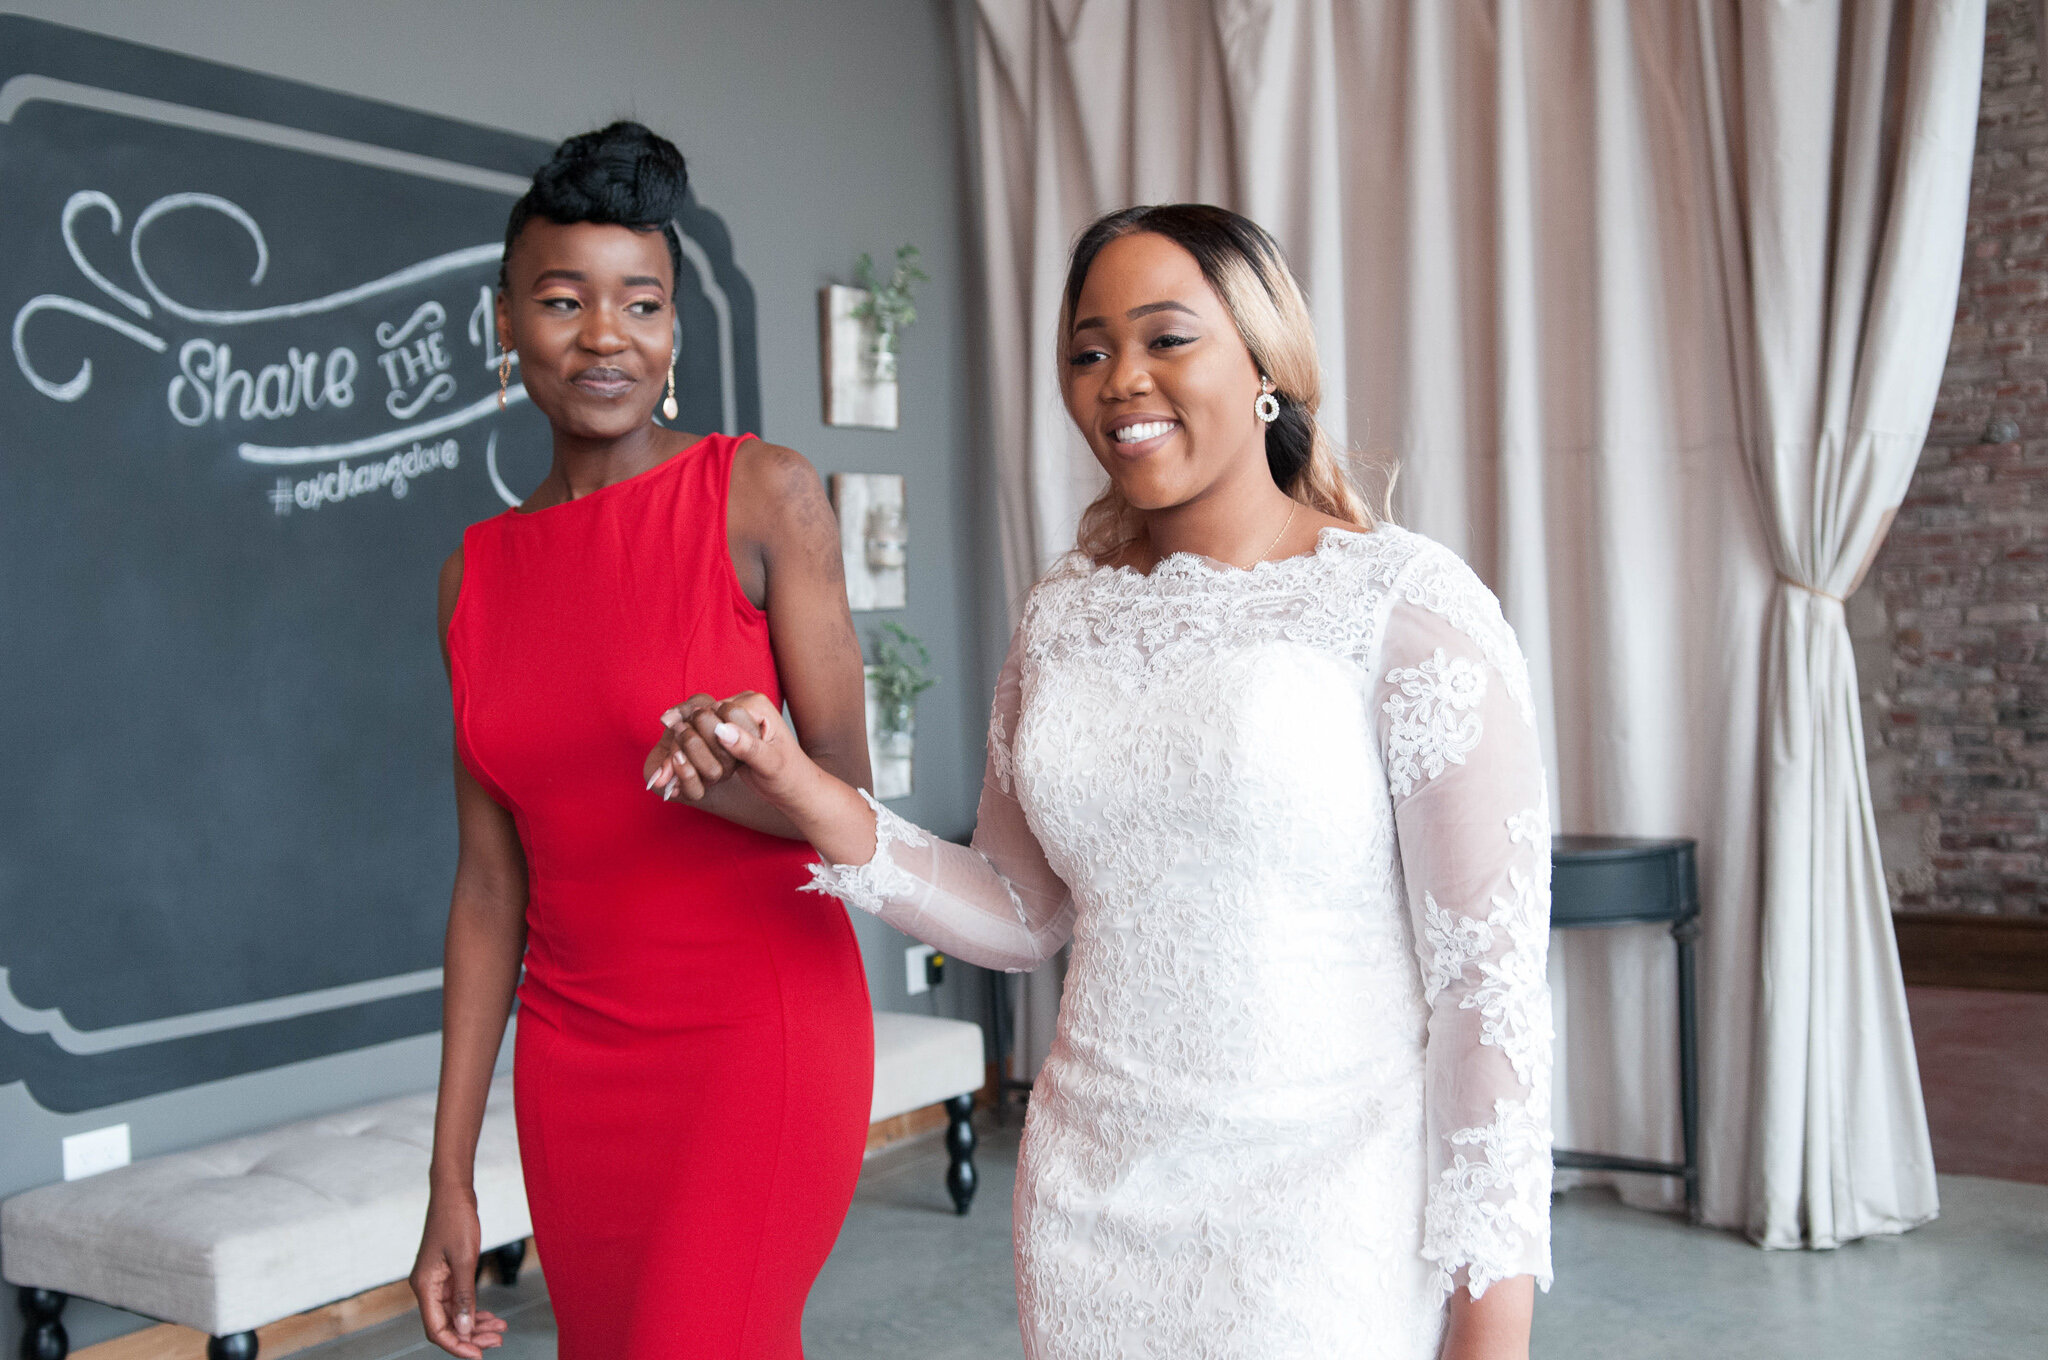 Beautiful Tatenda makes her grand entrance and walks down the aisle with her BFF holding her hand!